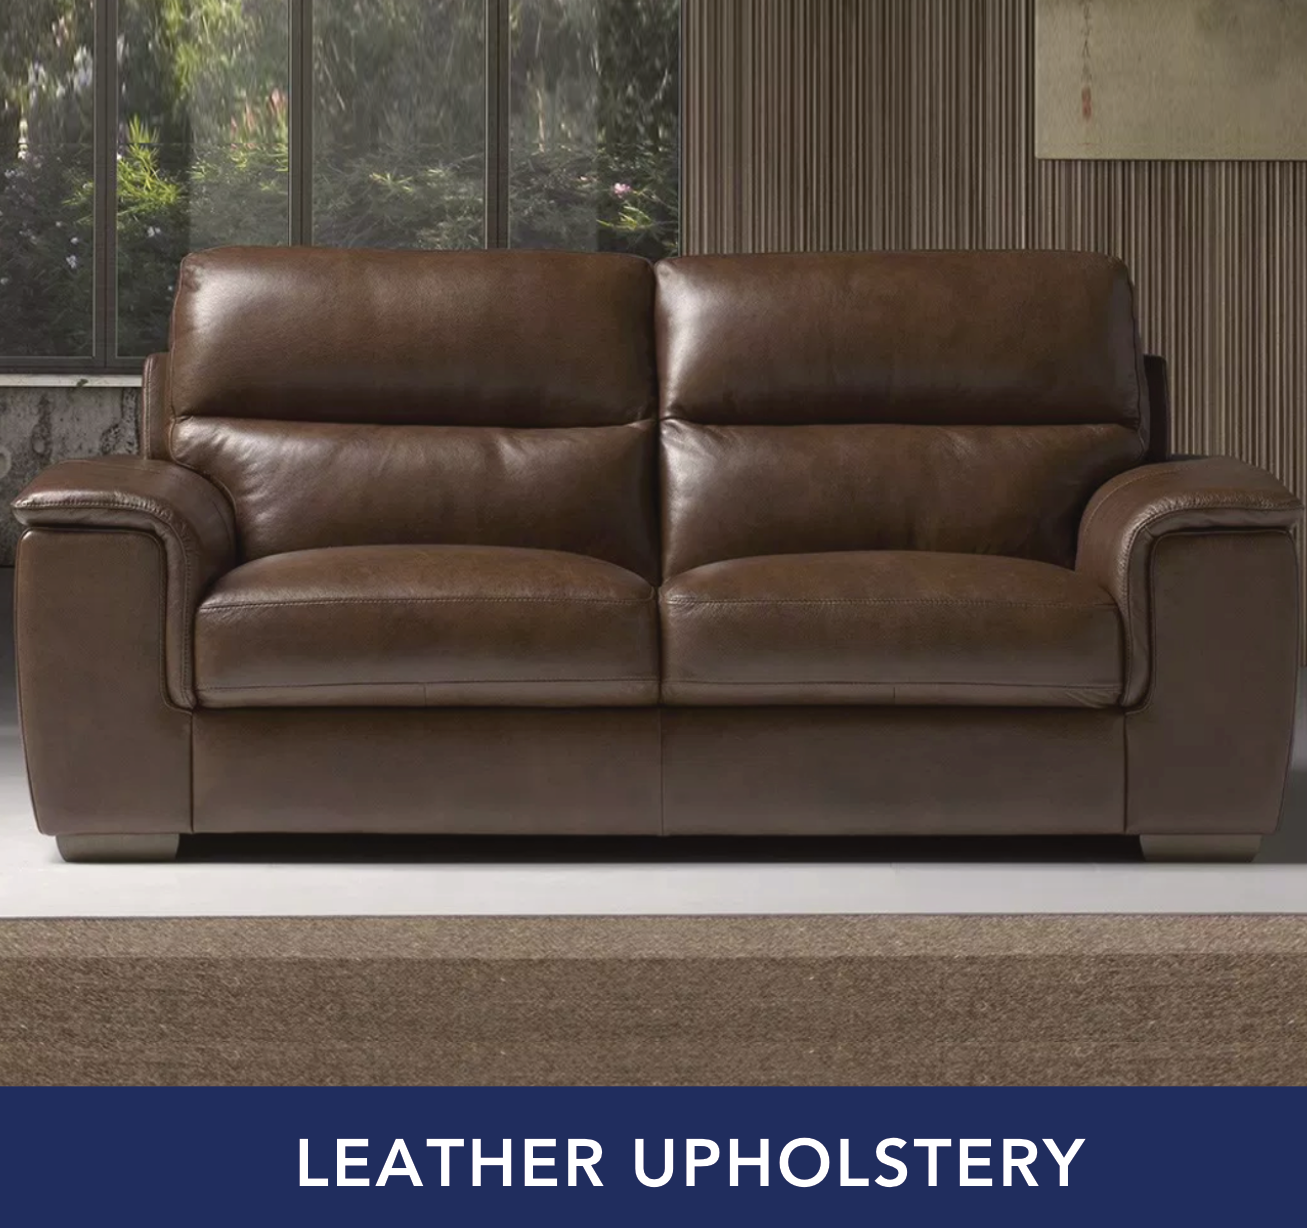 Leather Upholstery Group Page Link